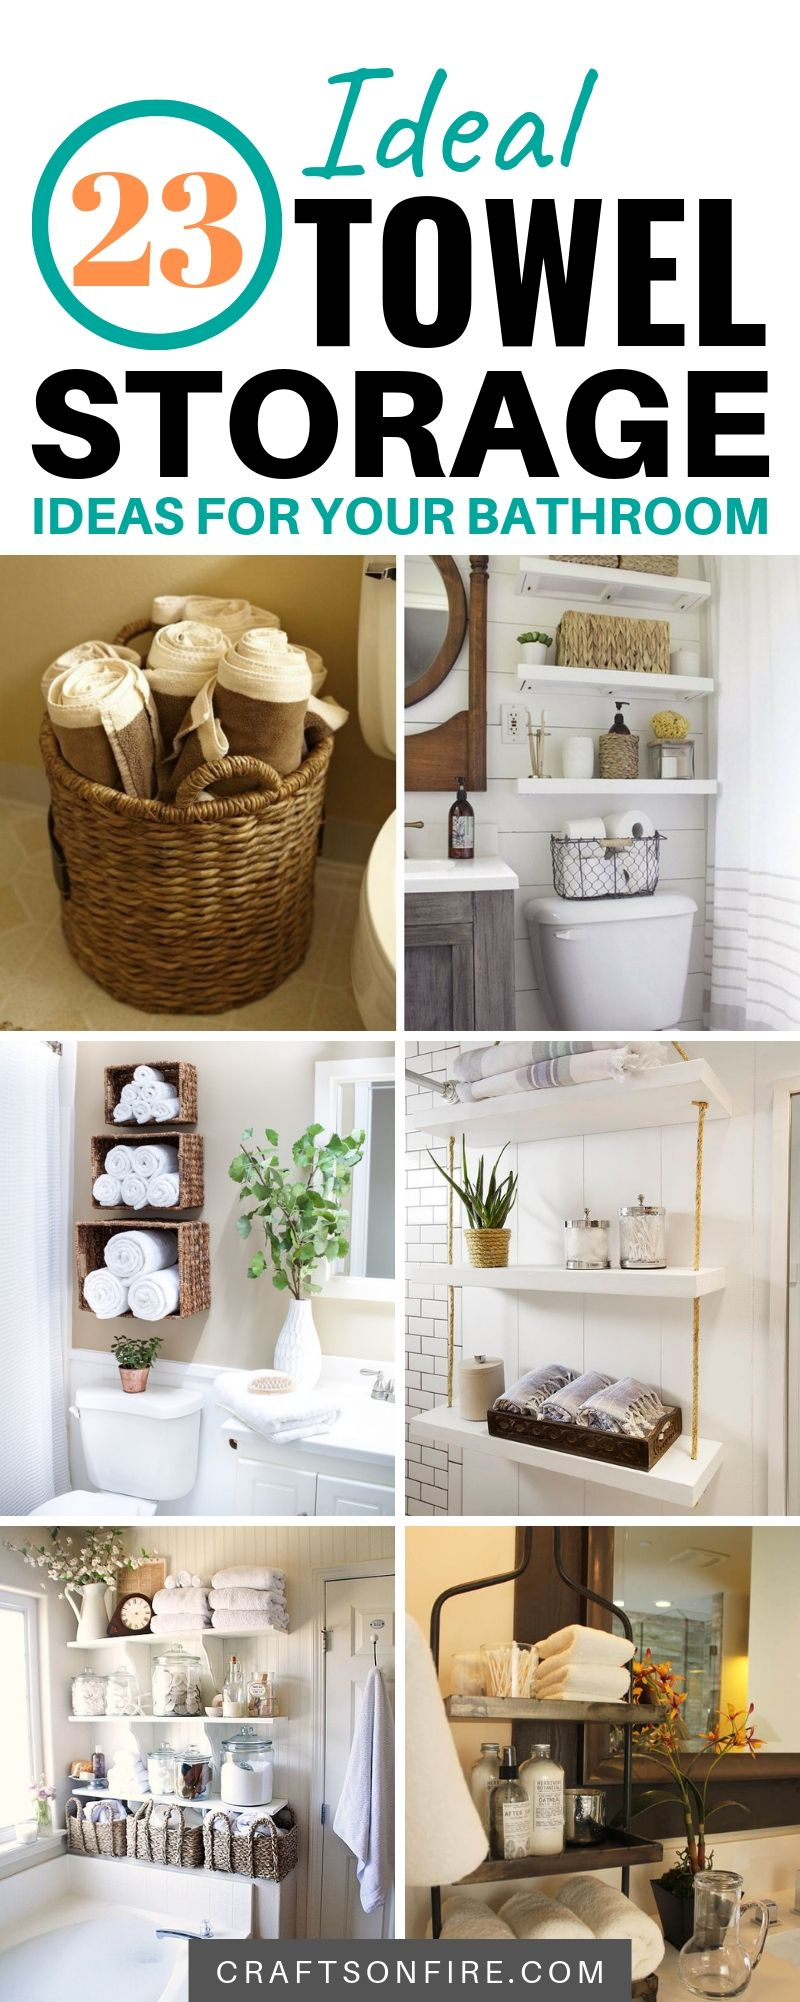 23 Great Towel Storage Ideas For 2019 That Really Work